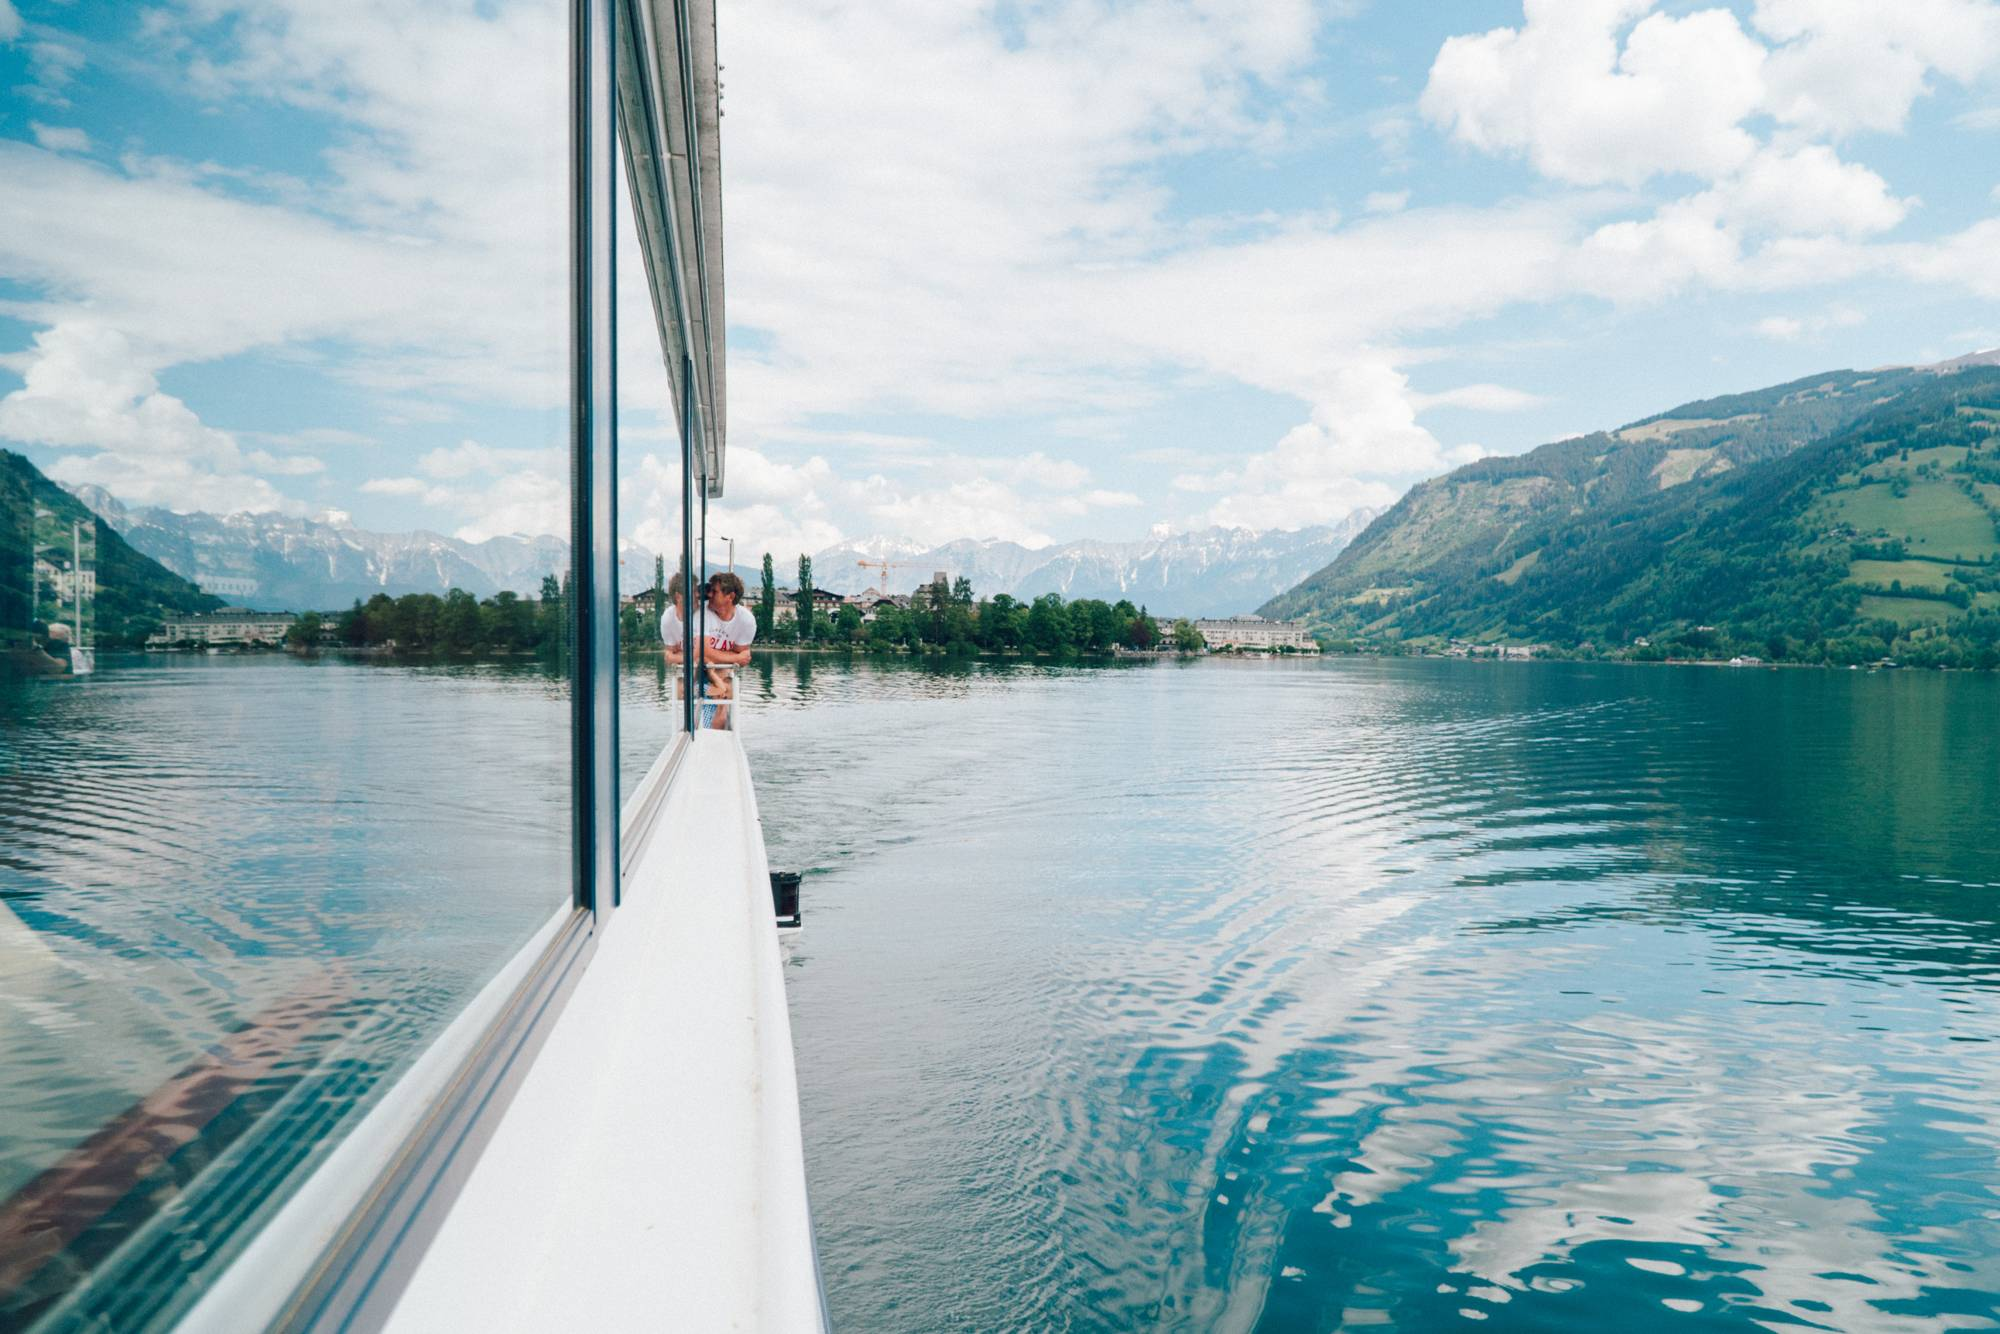 Shipping in Zell am See